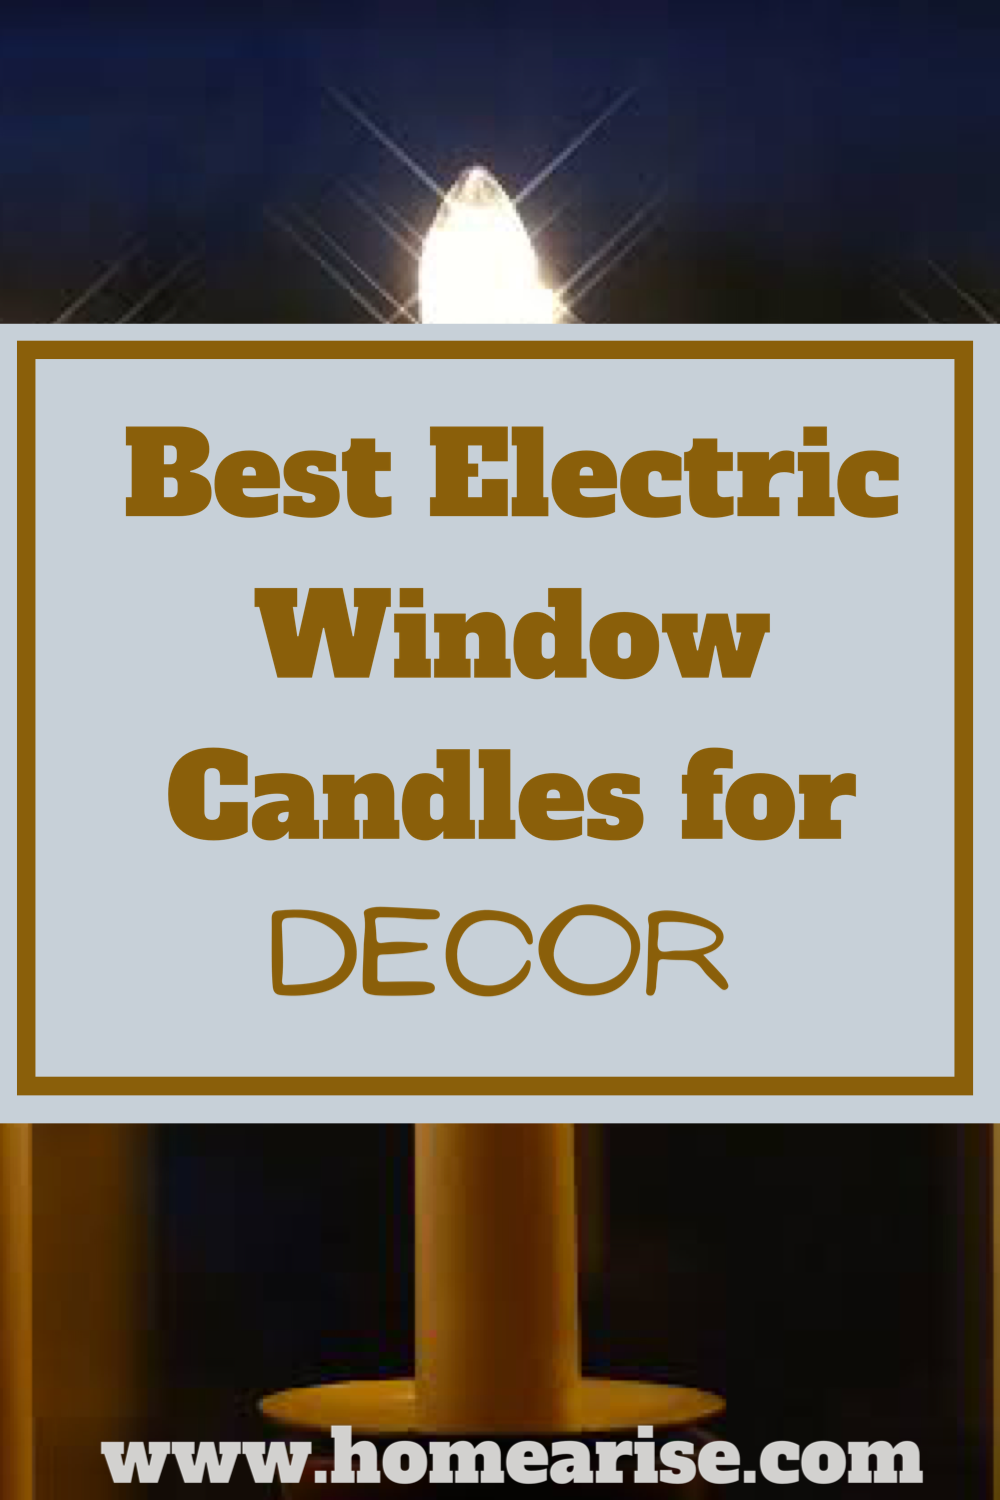 How To Pick The Best Electric Window Candles For Your Decor In 2020 Window Candles Electric Window Candles Best